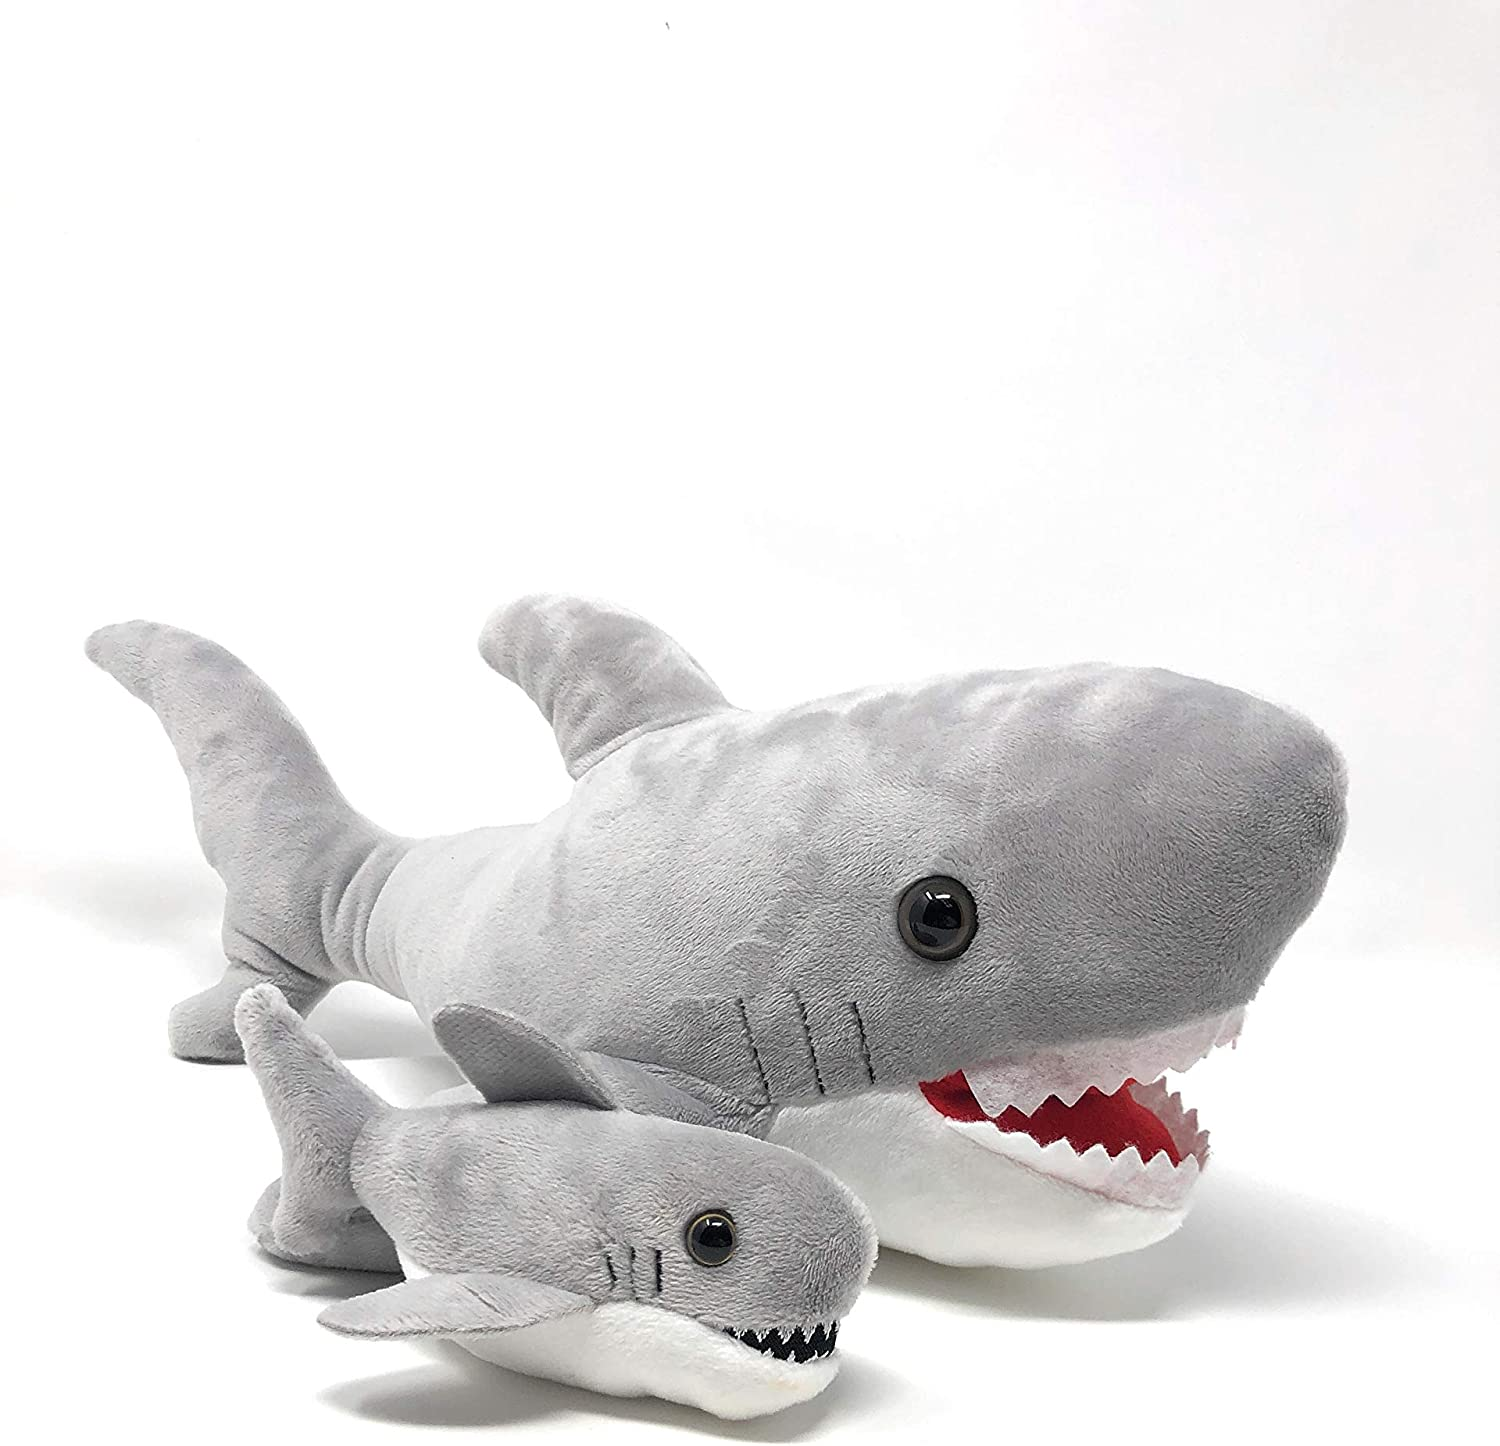 Soft Plush Shark With Pouch And Mini Pup, 16 Inches